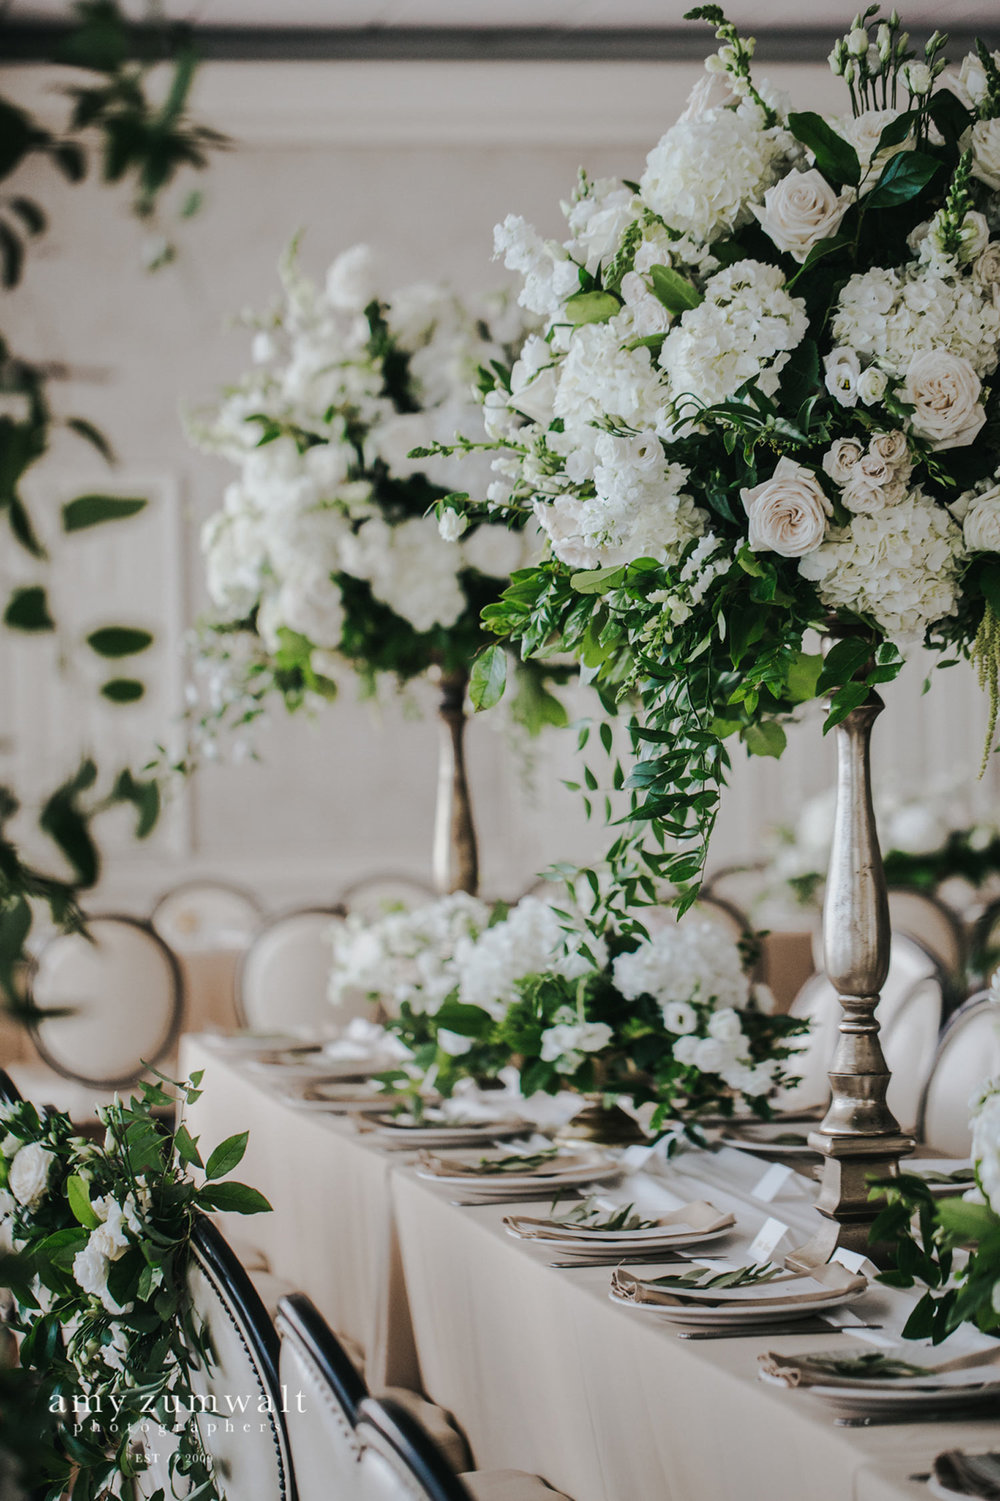 Tall white and green flower arrangements at head table of Willow Brook Country Club in Tyler